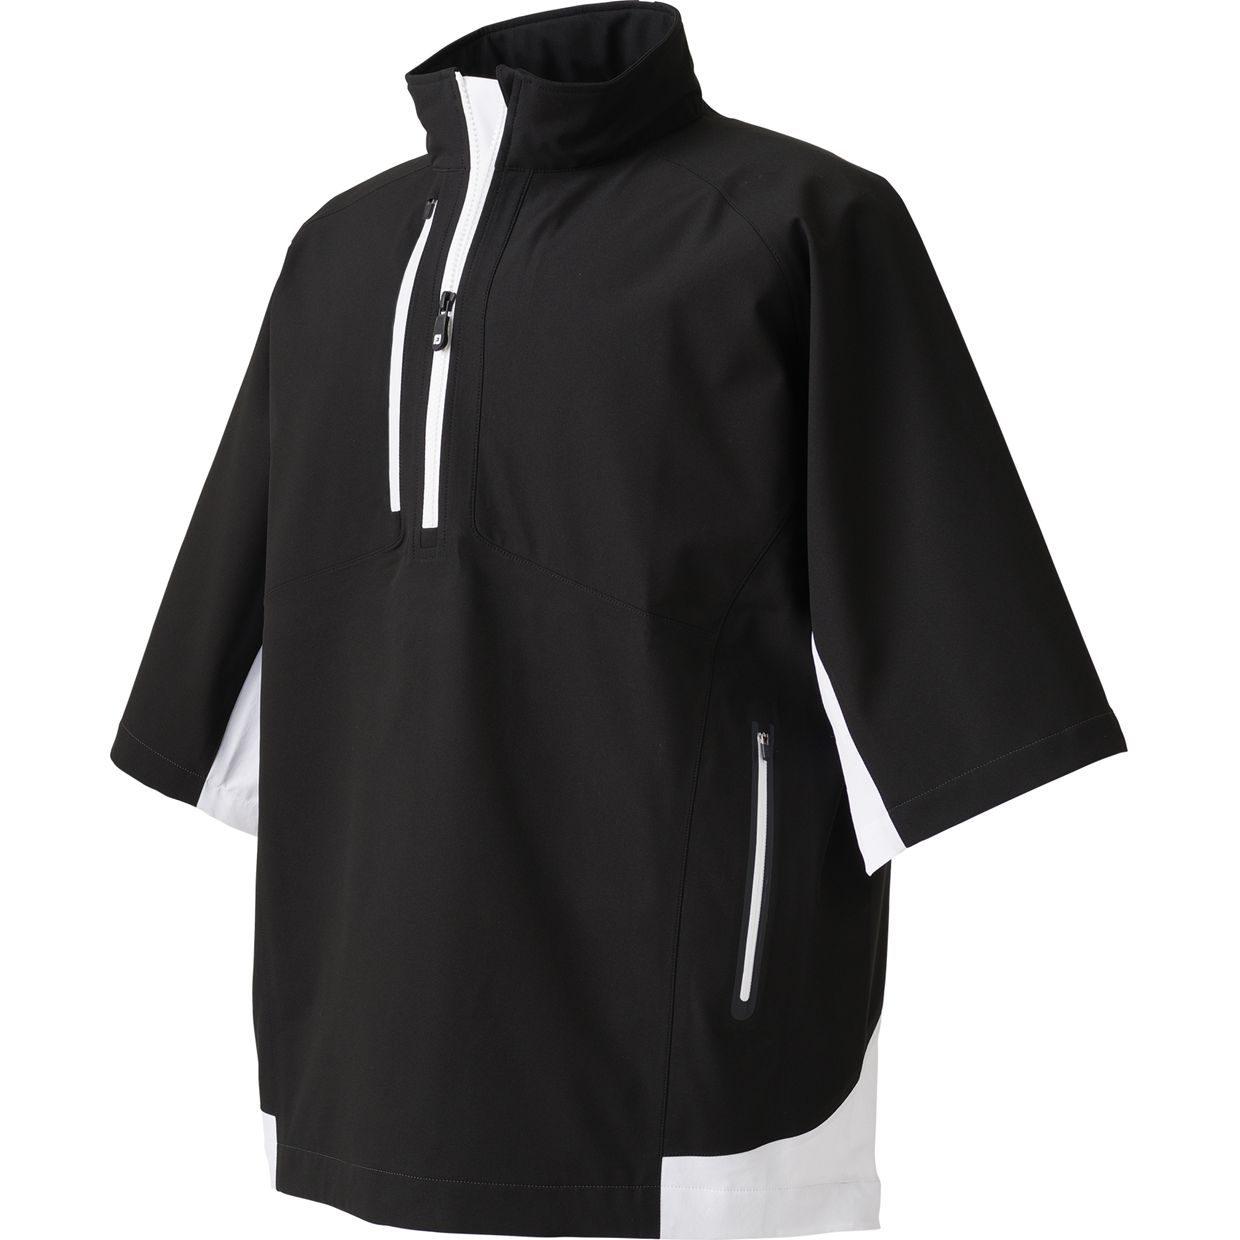 Footjoy Dryjoys Tour Xp S S Rainwear Apparel At